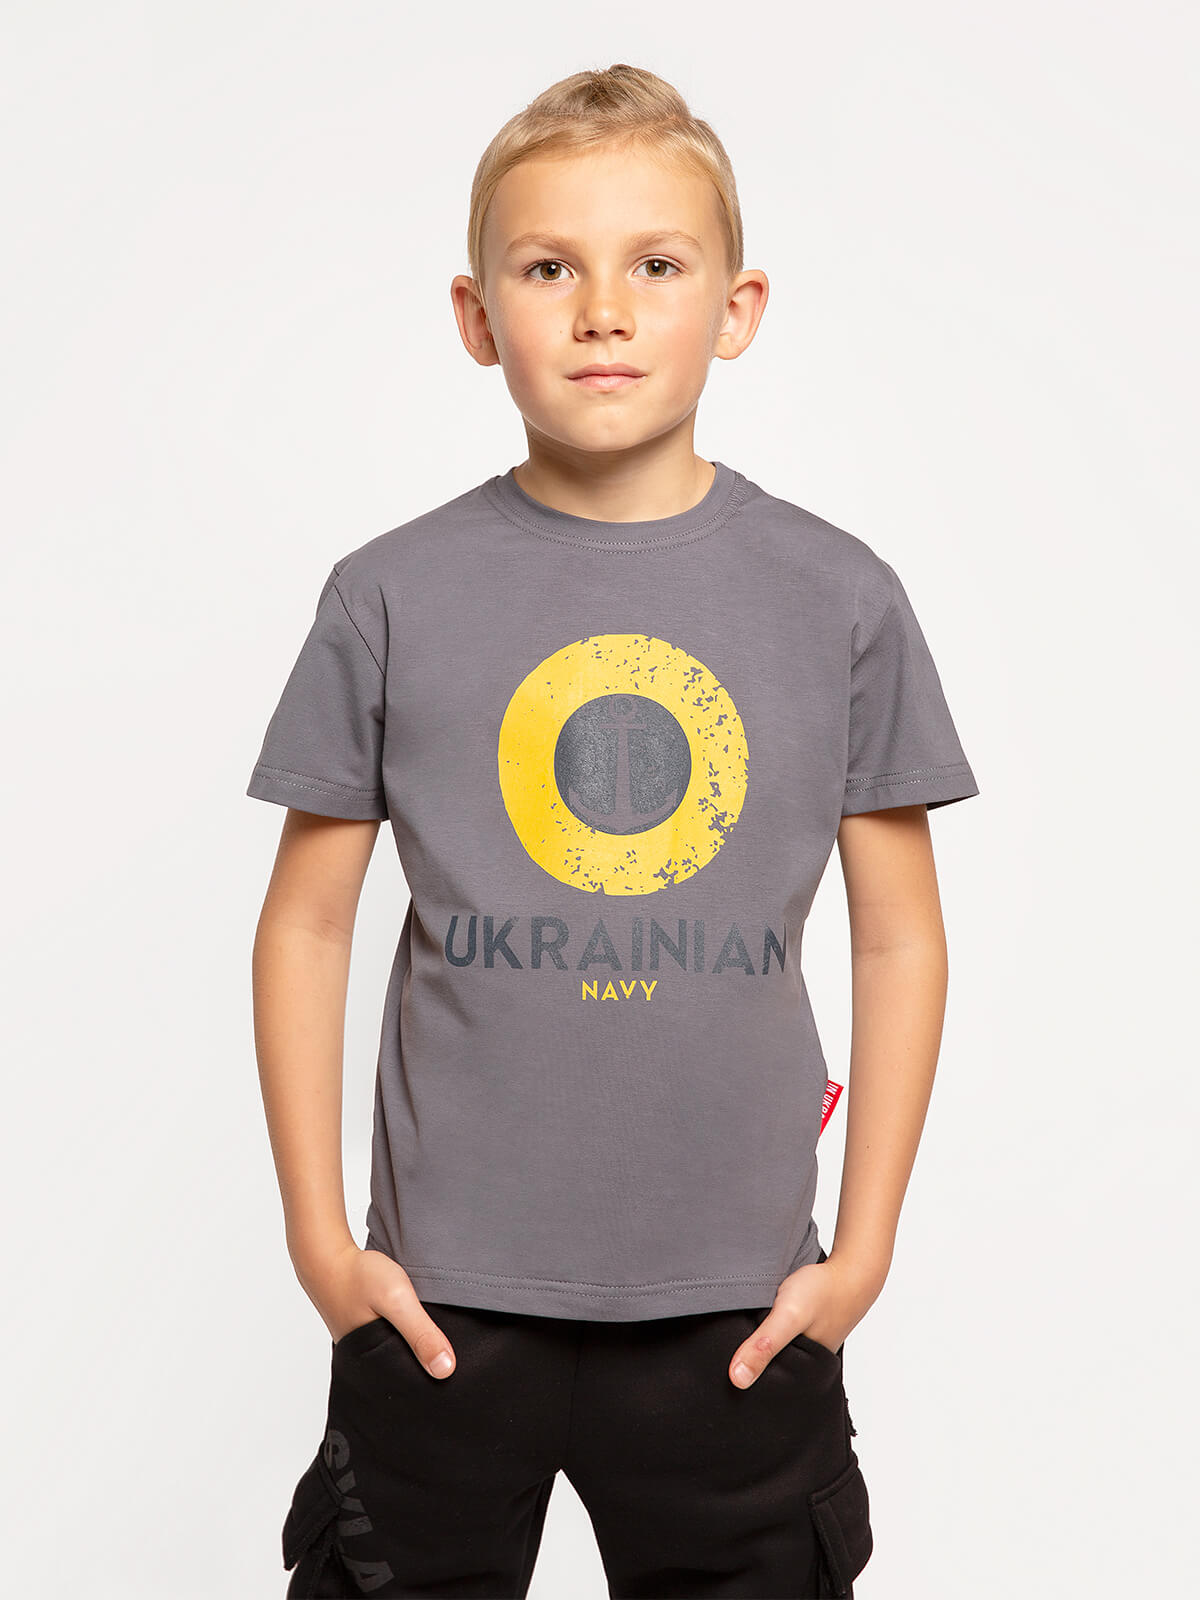 Kids T-Shirt Ukrainian Navy. Color dark gray. Unisex T-shirt well suited for both boys and girls.